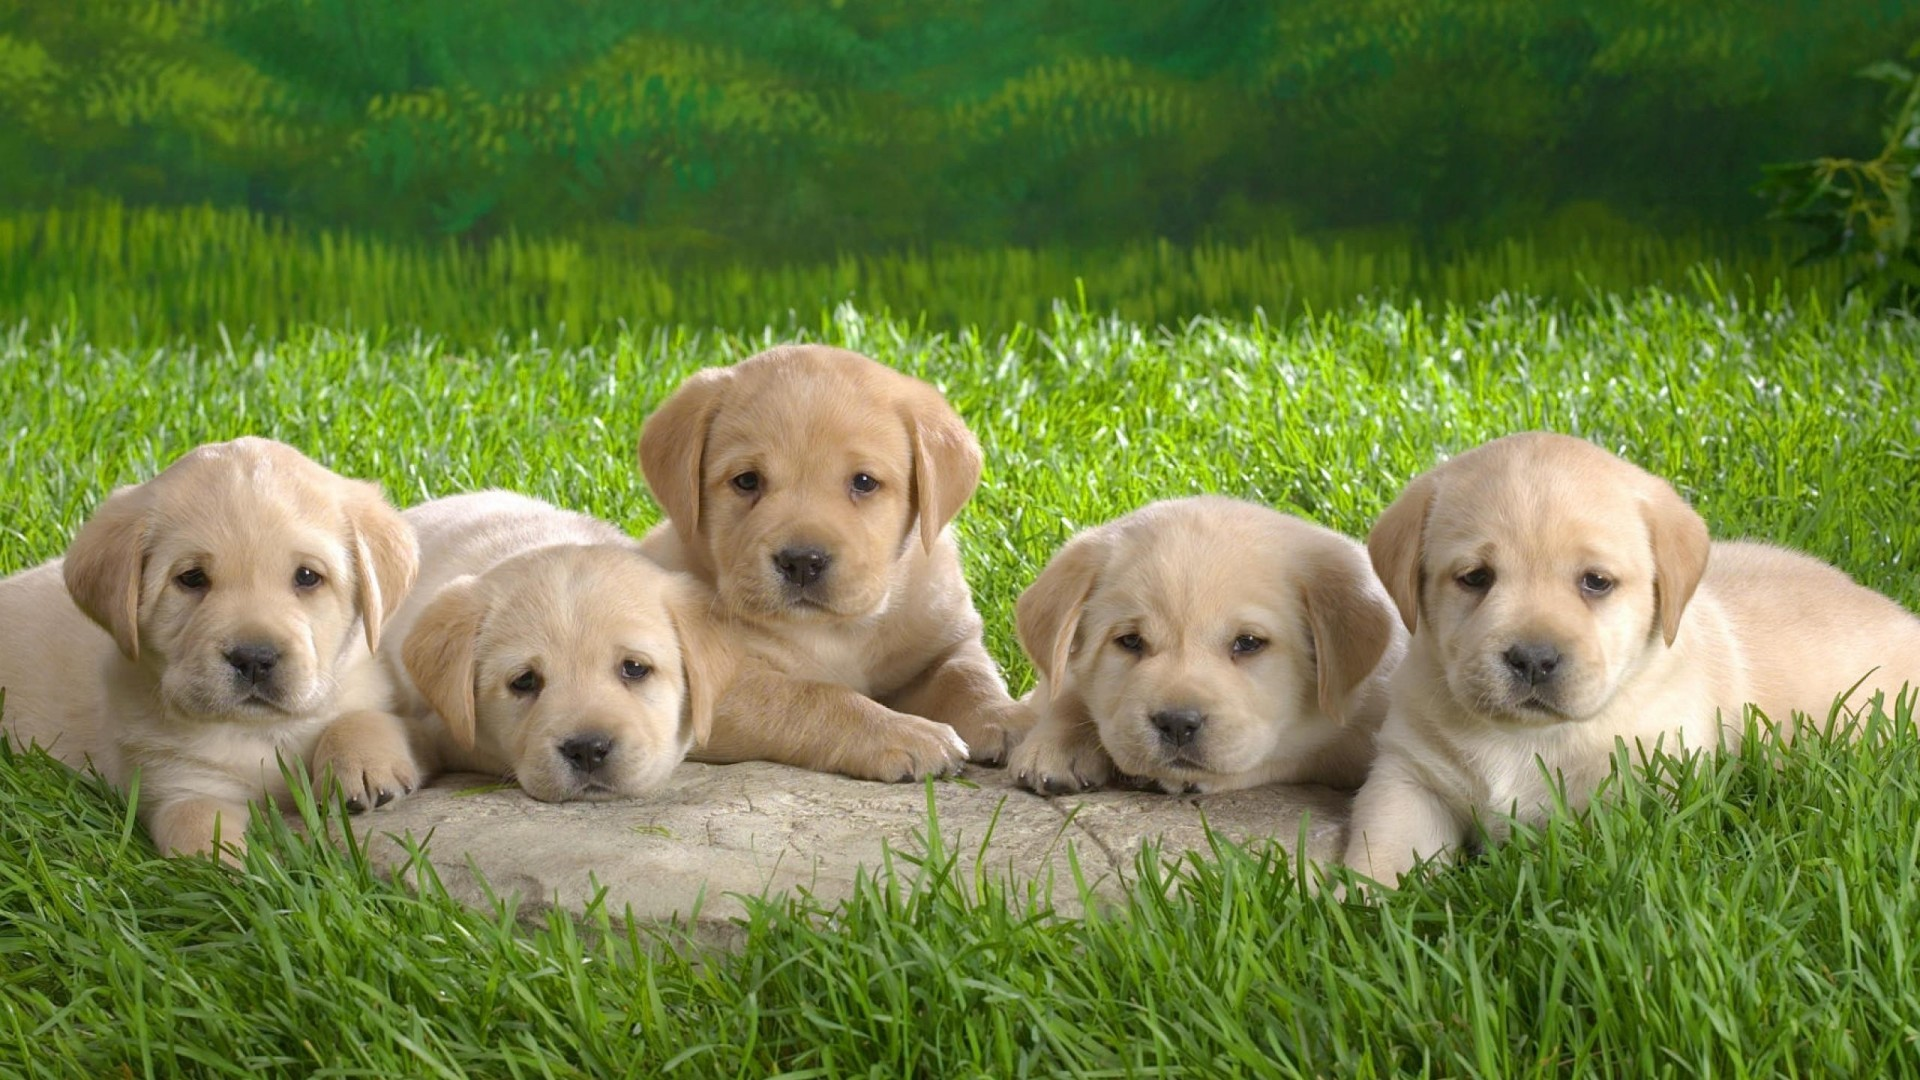 wallpapers of cute puppies (57+ images)